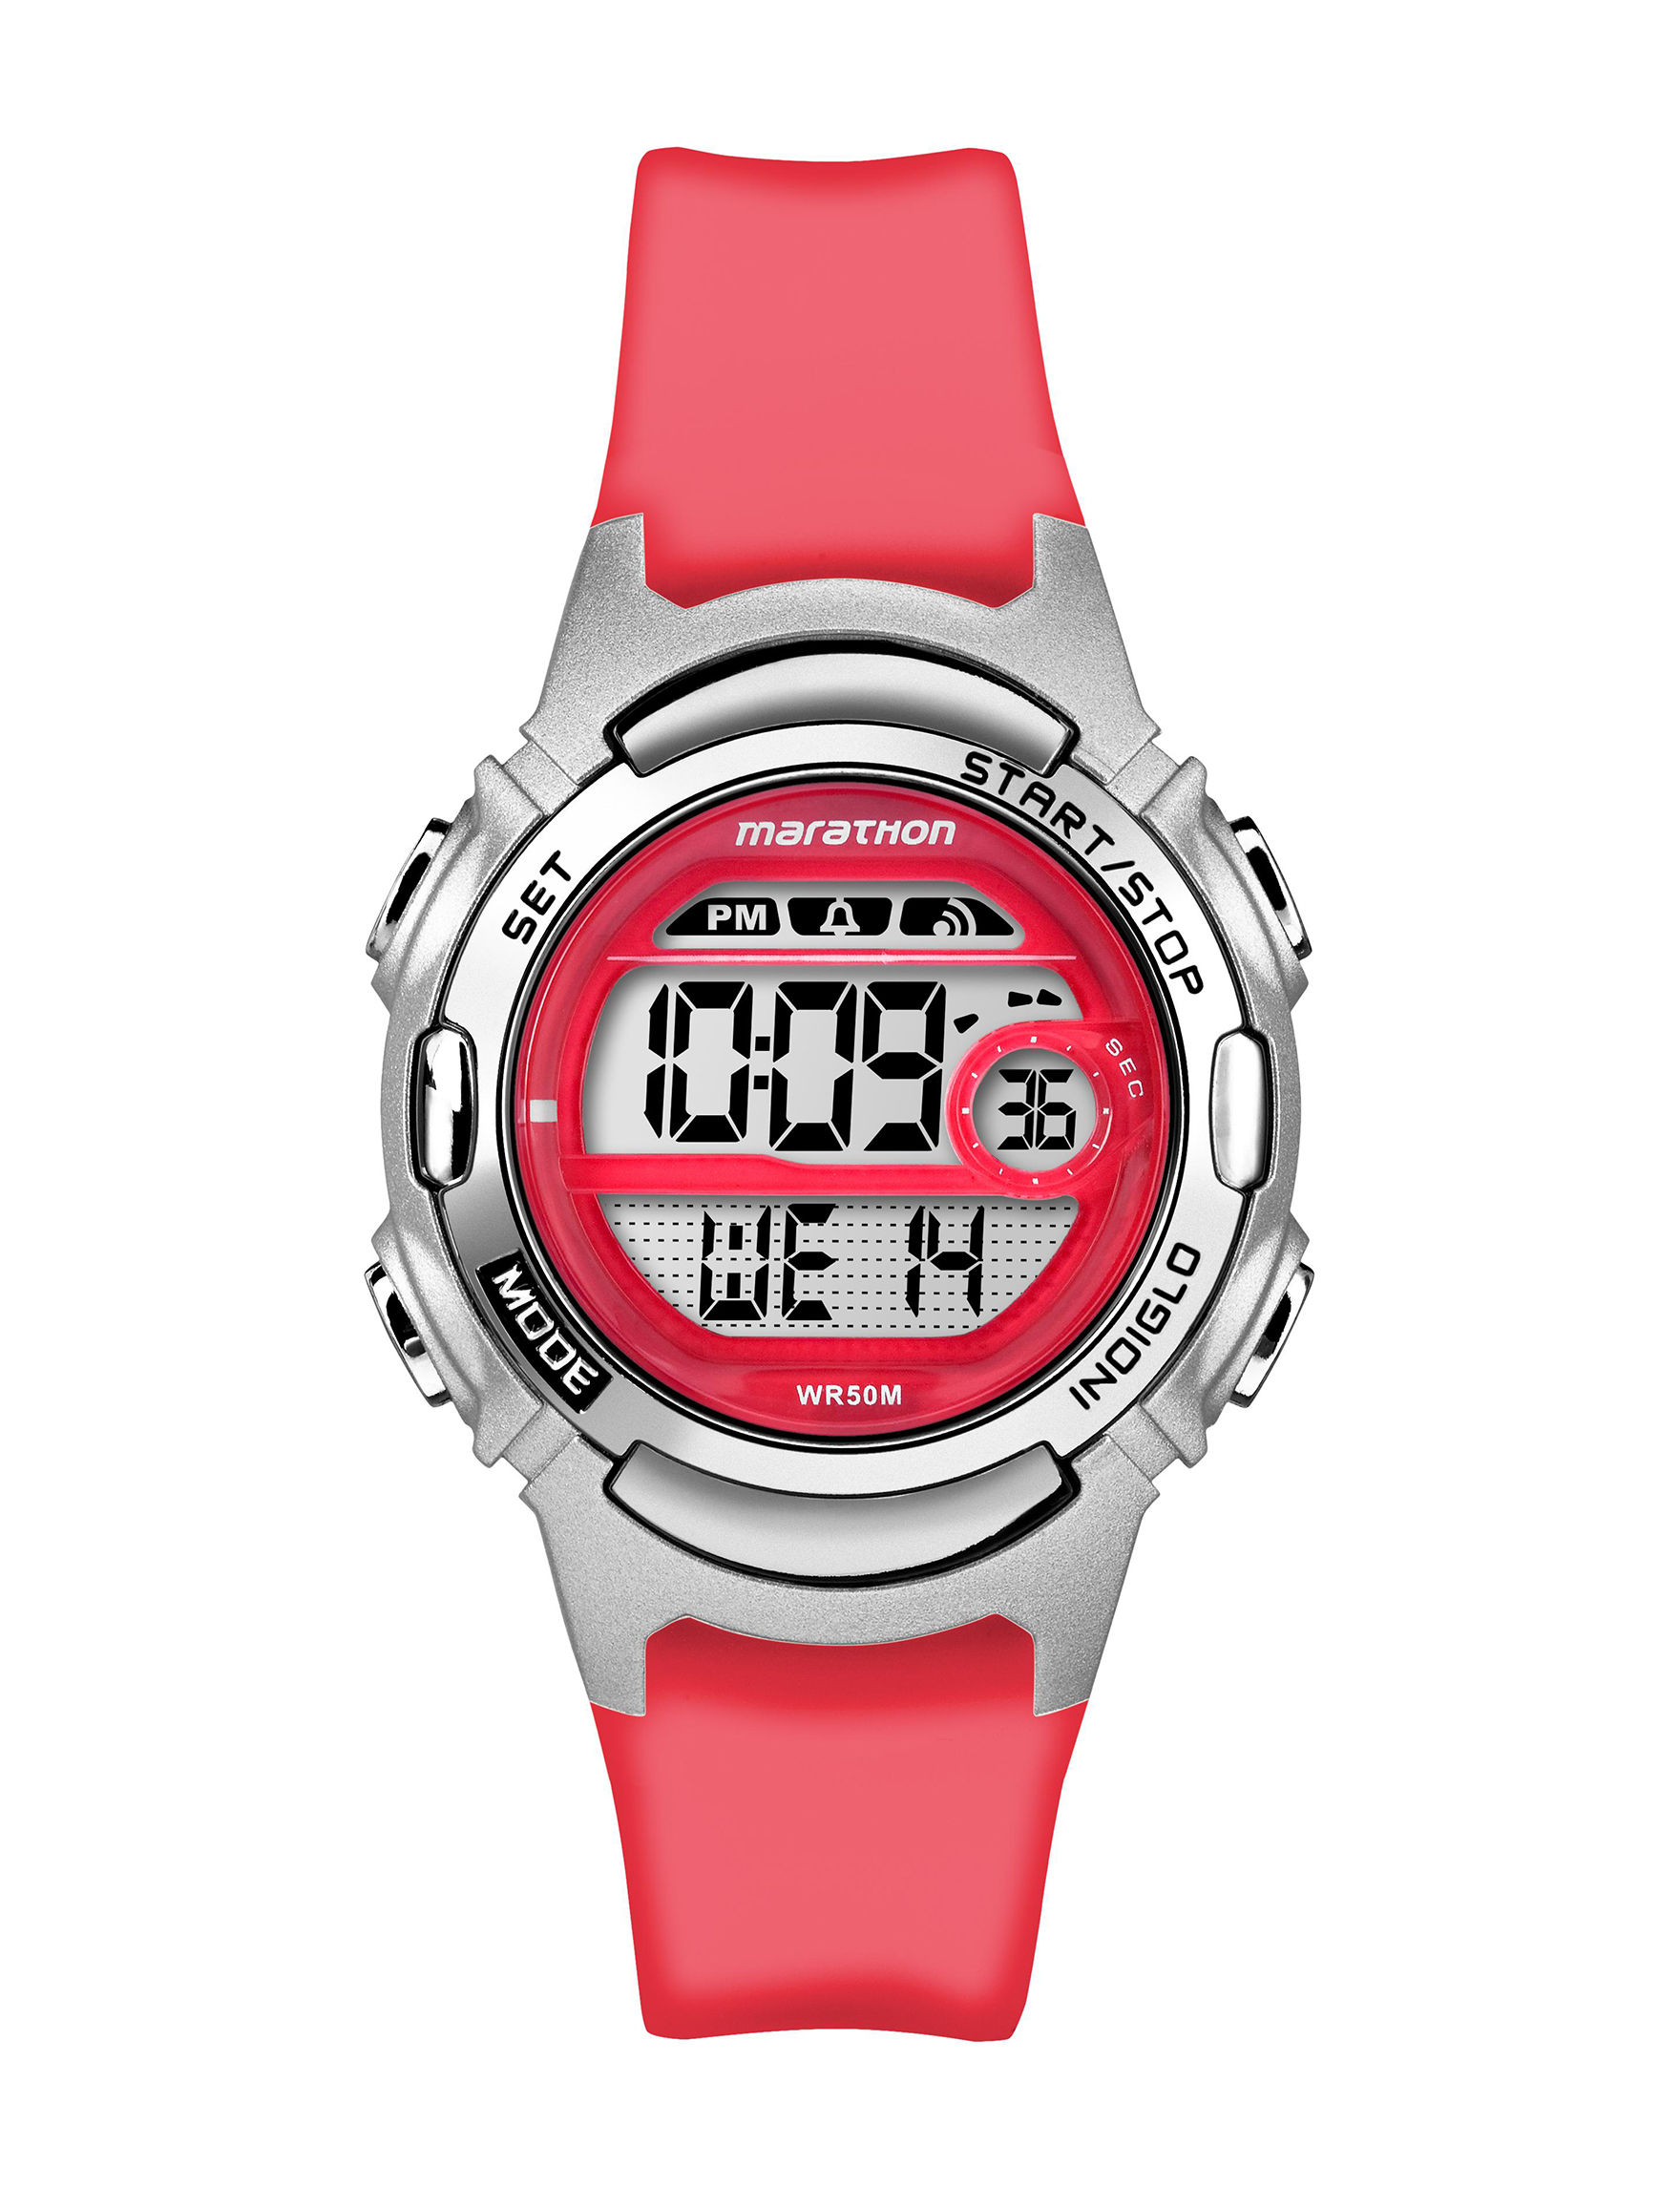 Timex Red Sport Watches Fitness Tech & Tracking